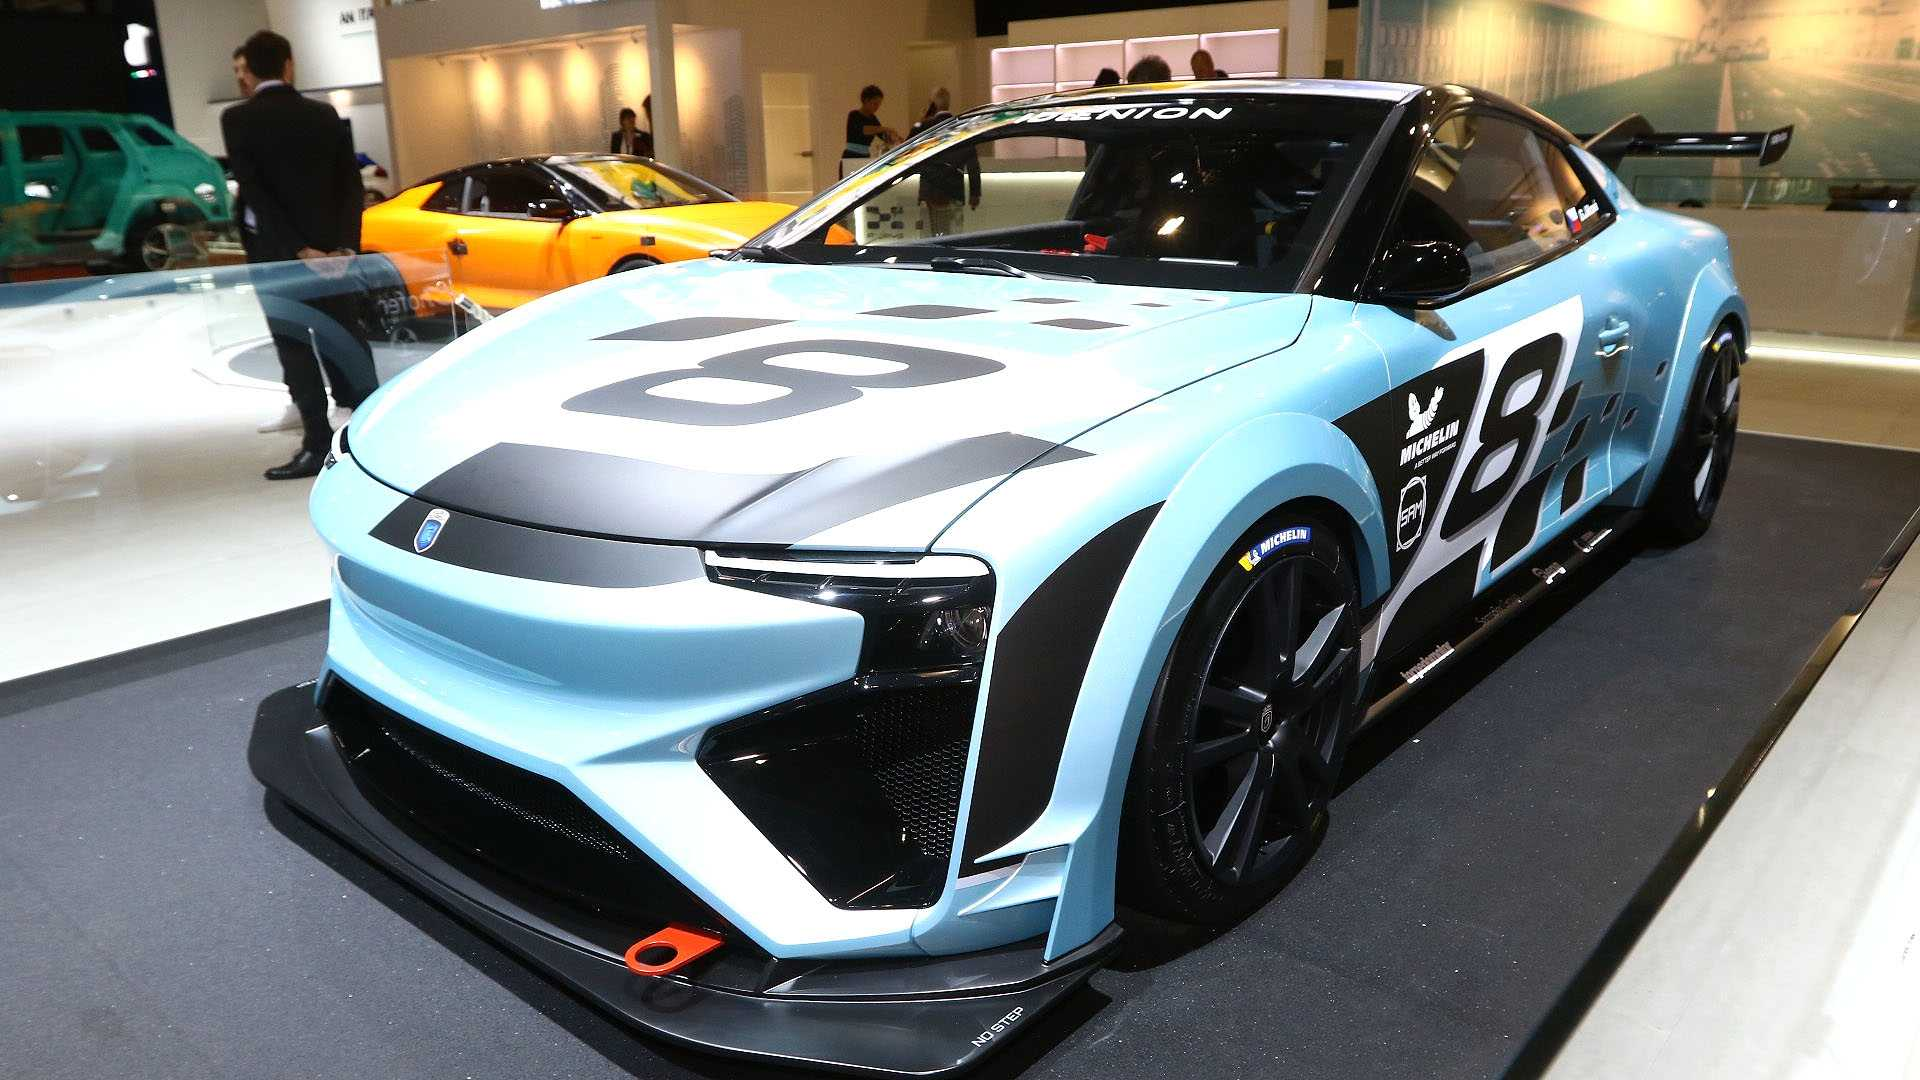 At the ongoing 2019 Geneva Motor Show, German engineer and businessman Roland Gumpert unveiled the track-going Race version of his methanol/electric super sports car Nathalie introduced last year